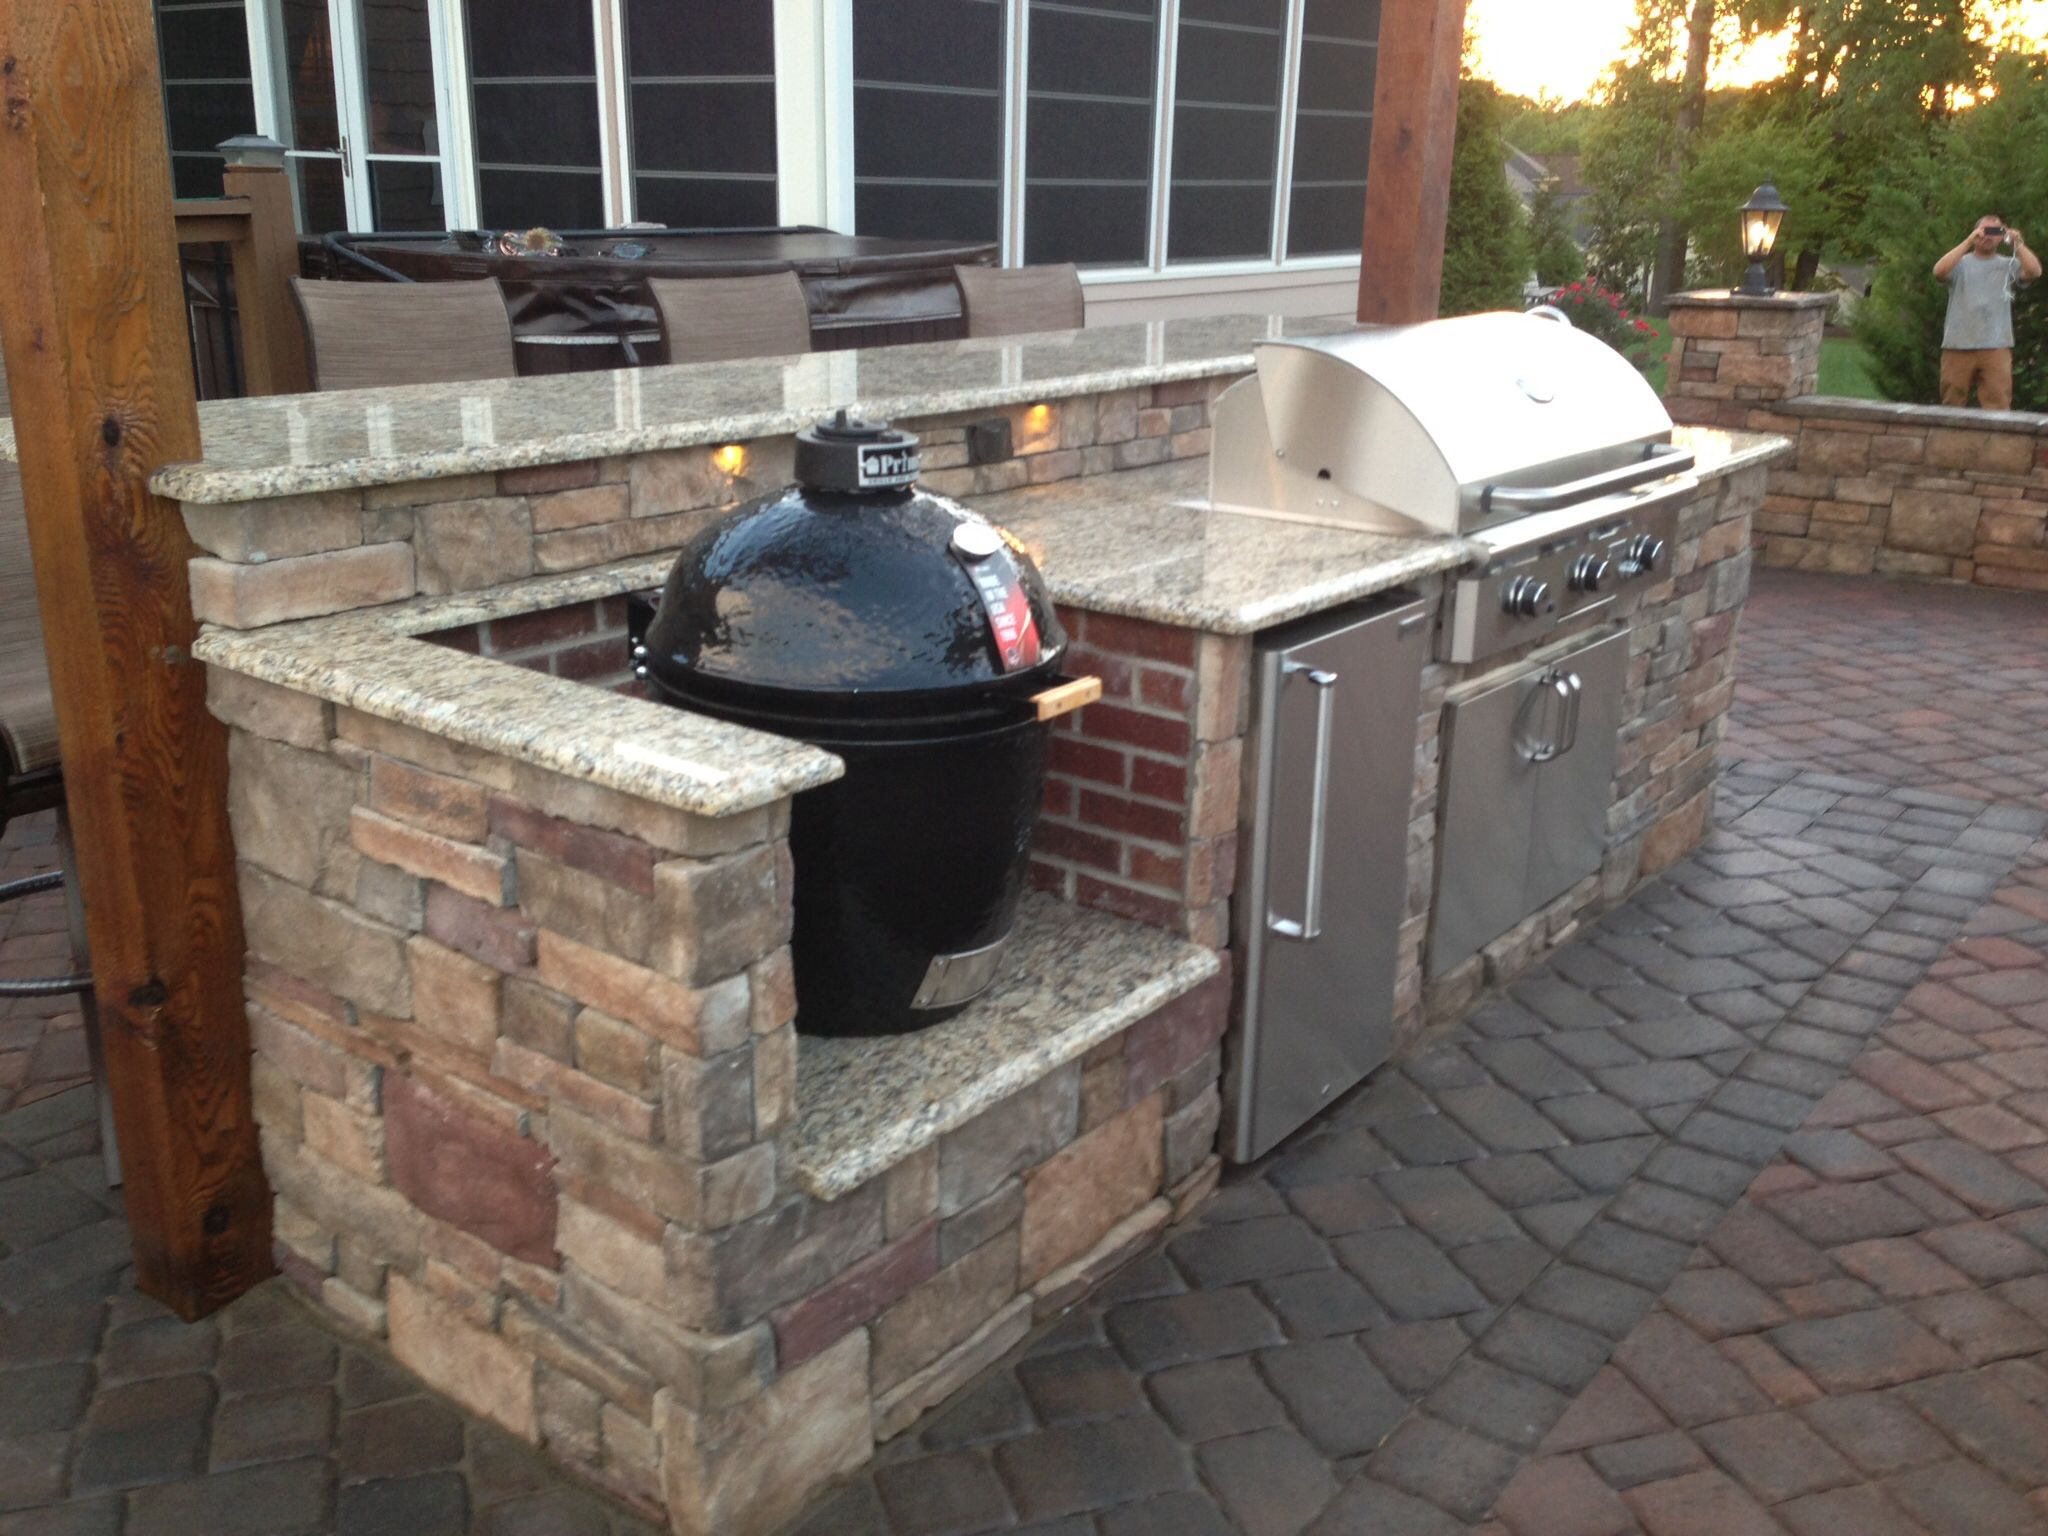 Island Smoker Has A Brick Surround For A Unique Contrast With The Stone Work Small Outdoor Kitchens Outdoor Grill Space Outdoor Bbq